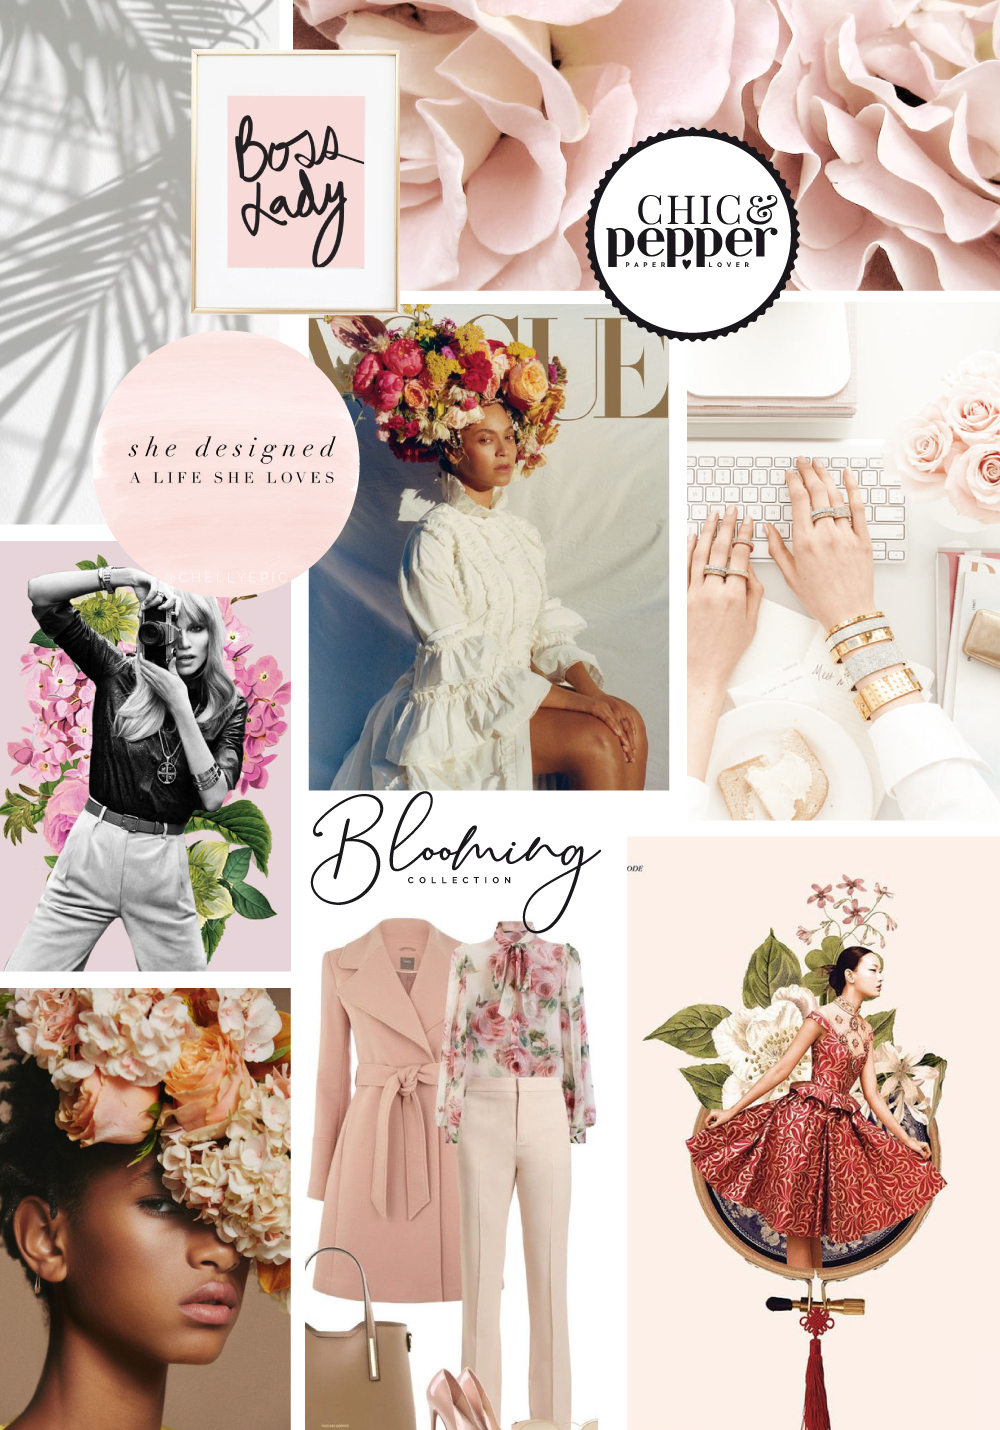 Air Chic Design:disque externe:EXOChic:1 -POSTS:1 - ARTICLES:2018:12 - DECEMBRE:03 - CHIC AND PEPPER:Chic and Pepper Collection Blooming Girl boss exochic 3.jpg